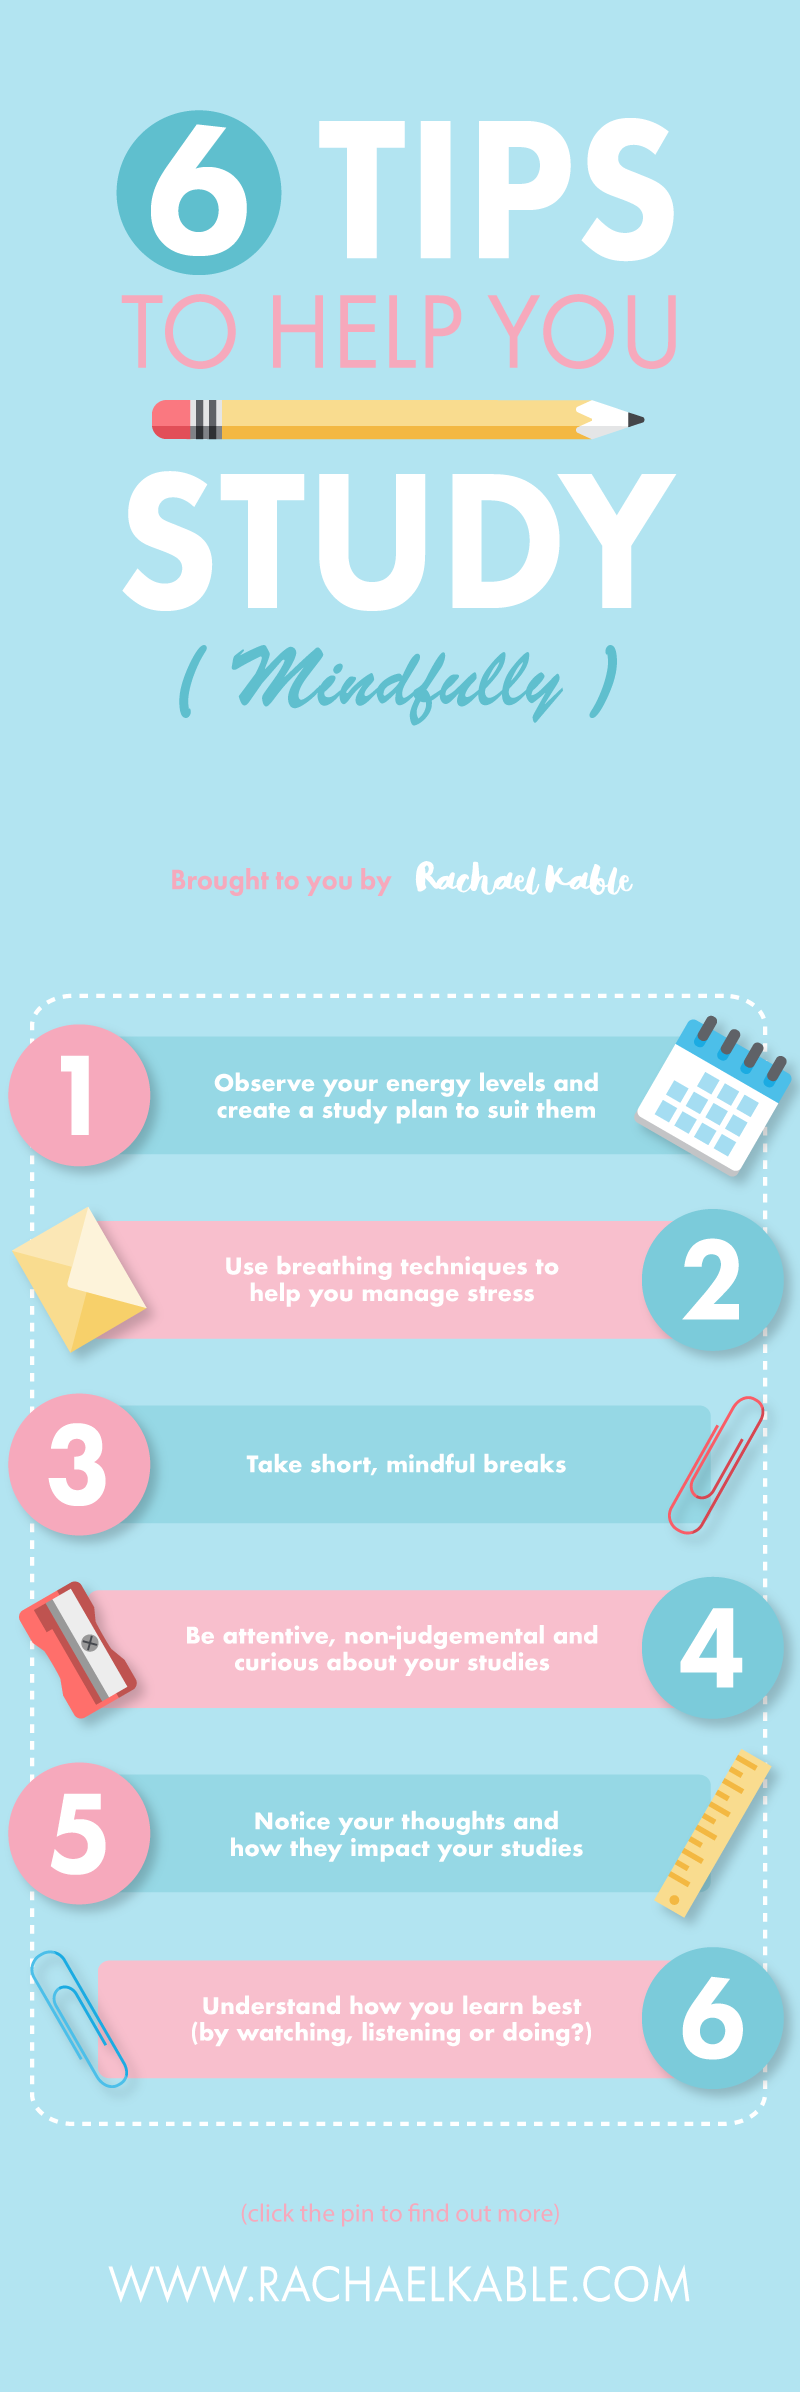 The Mindful Kind Episode 119 tips to help you study.png